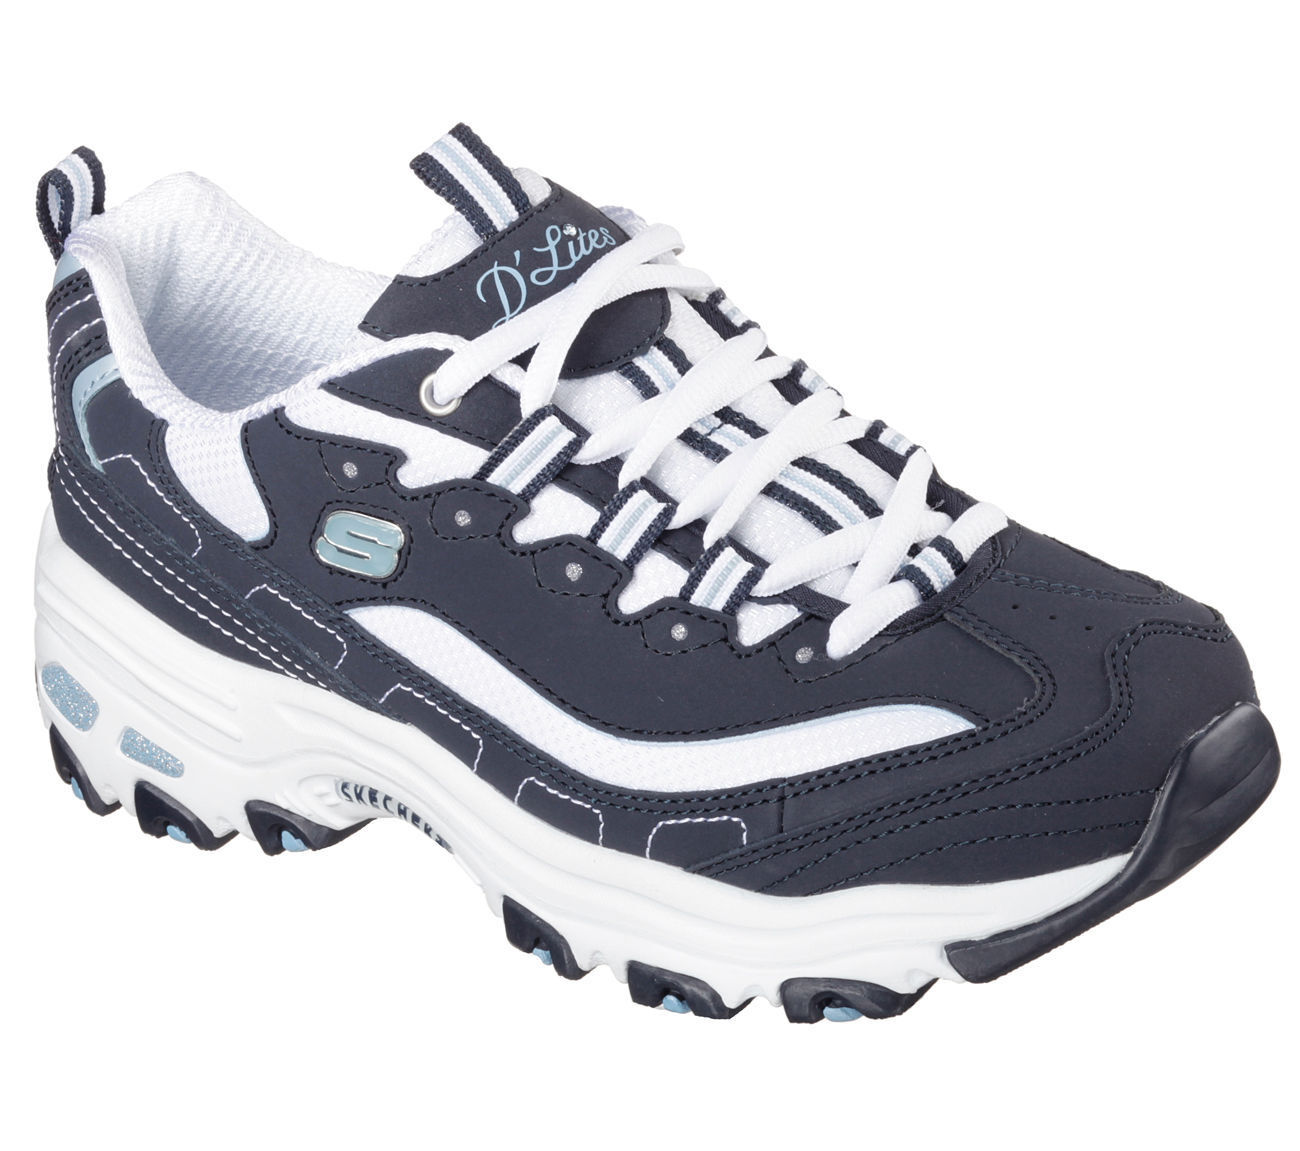 11930 NVW Navy White Dlites Skechers Shoes Womens Casual Memory Foam Sneaker New